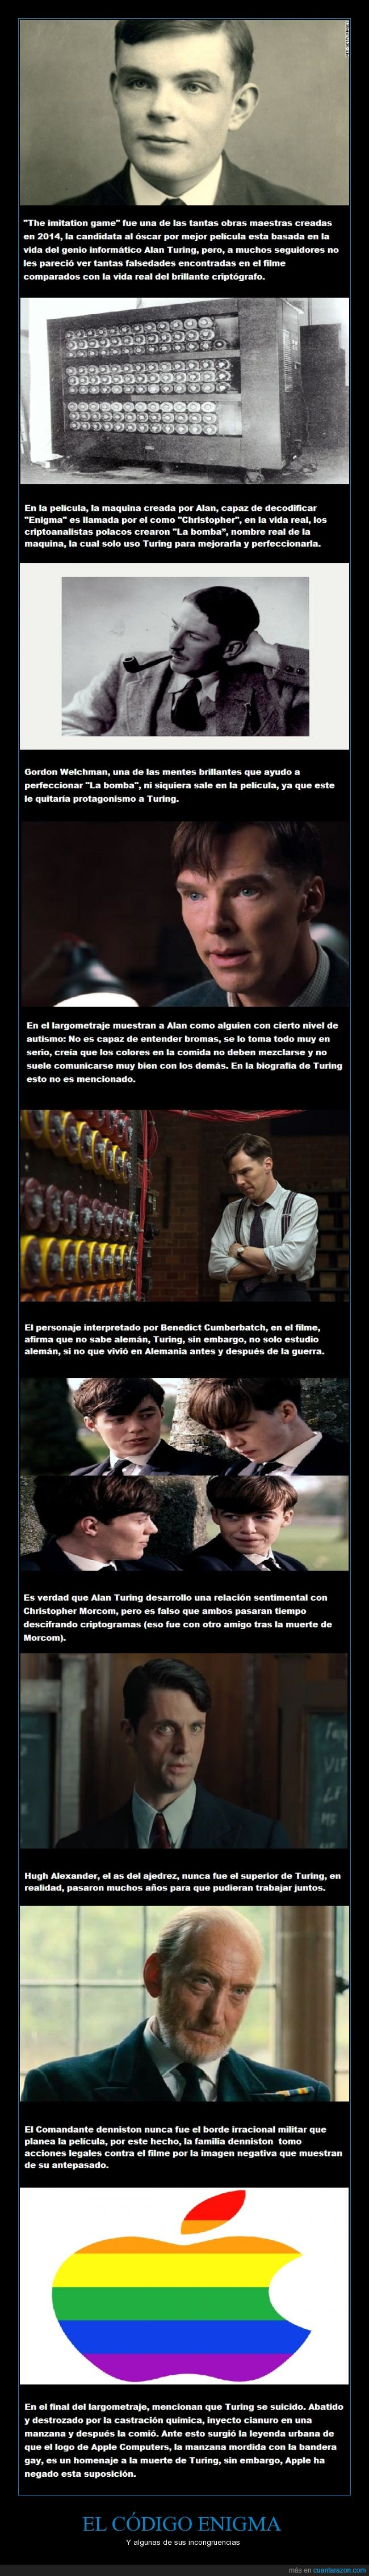 alan turing,apple,benedict cumberbatch,Codigo enigma,The imitation game